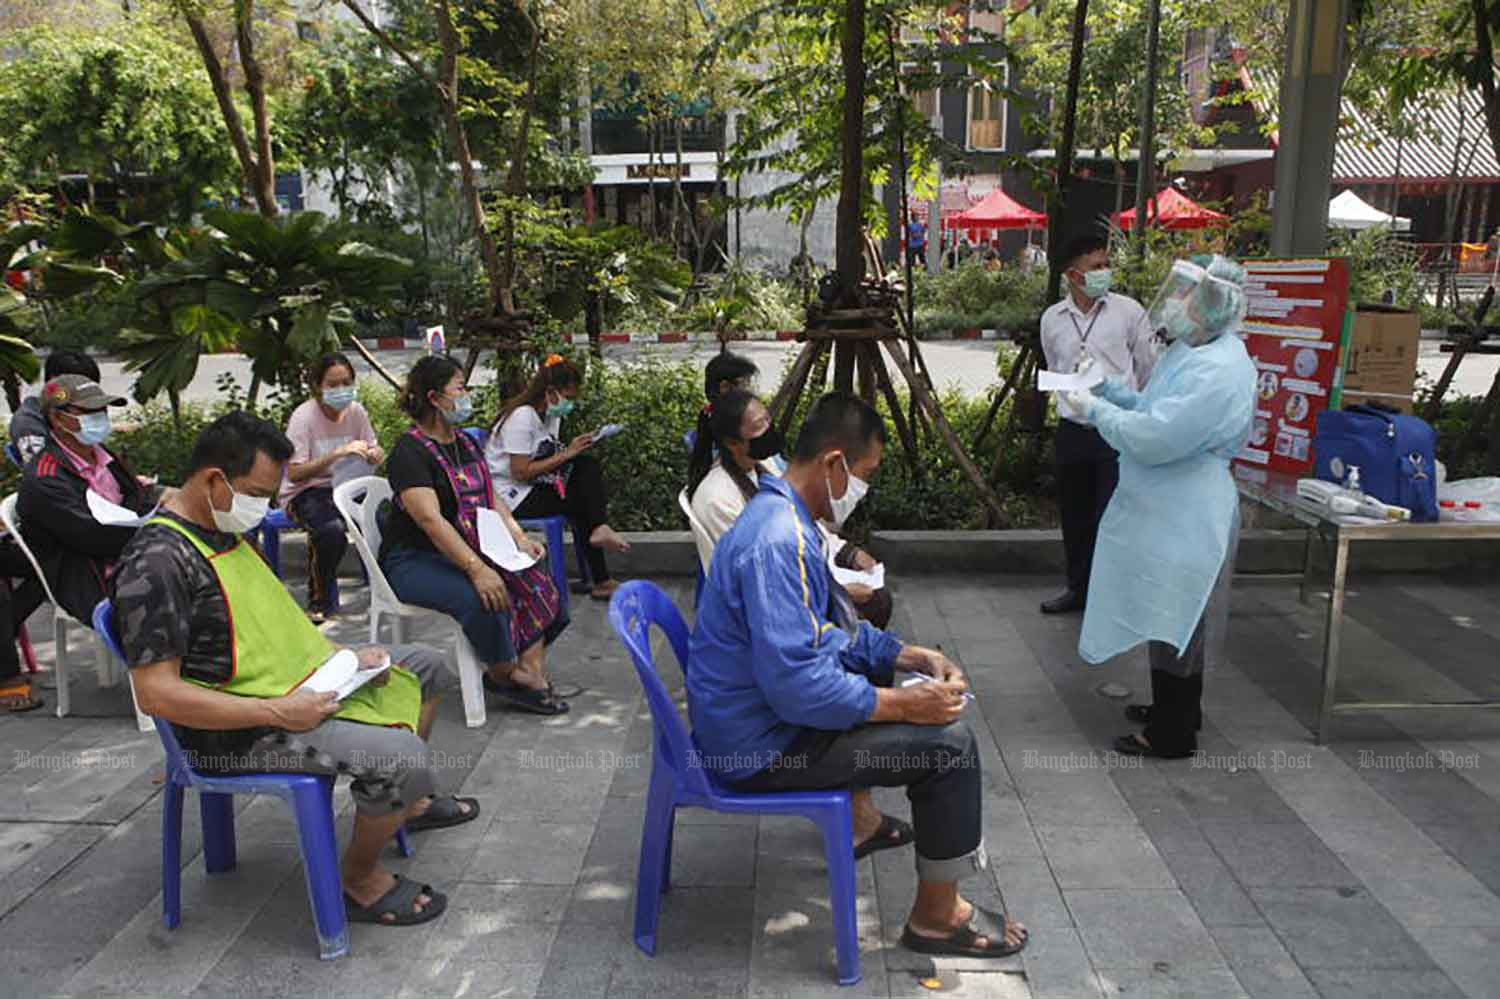 People awaiting Covid-19 tests are given a briefing by a medical officer in Suan Luang, Bangkok, on Wednesday. The tests were ordered after an infected person visited the area recently. (Photo by Nutthawat Wicheanbut)